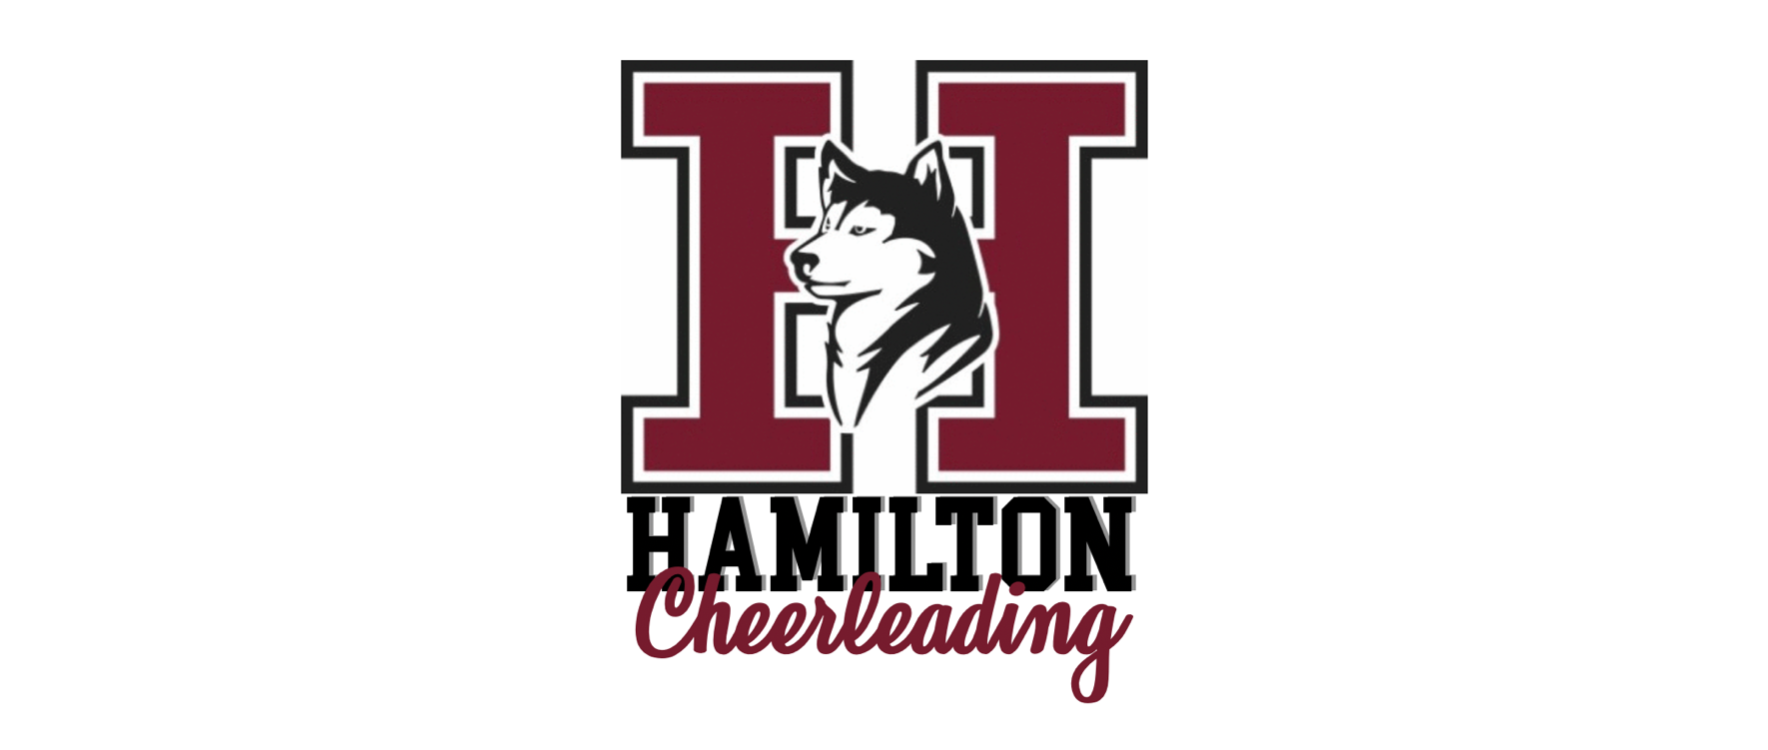 Hamilton Cheerleading